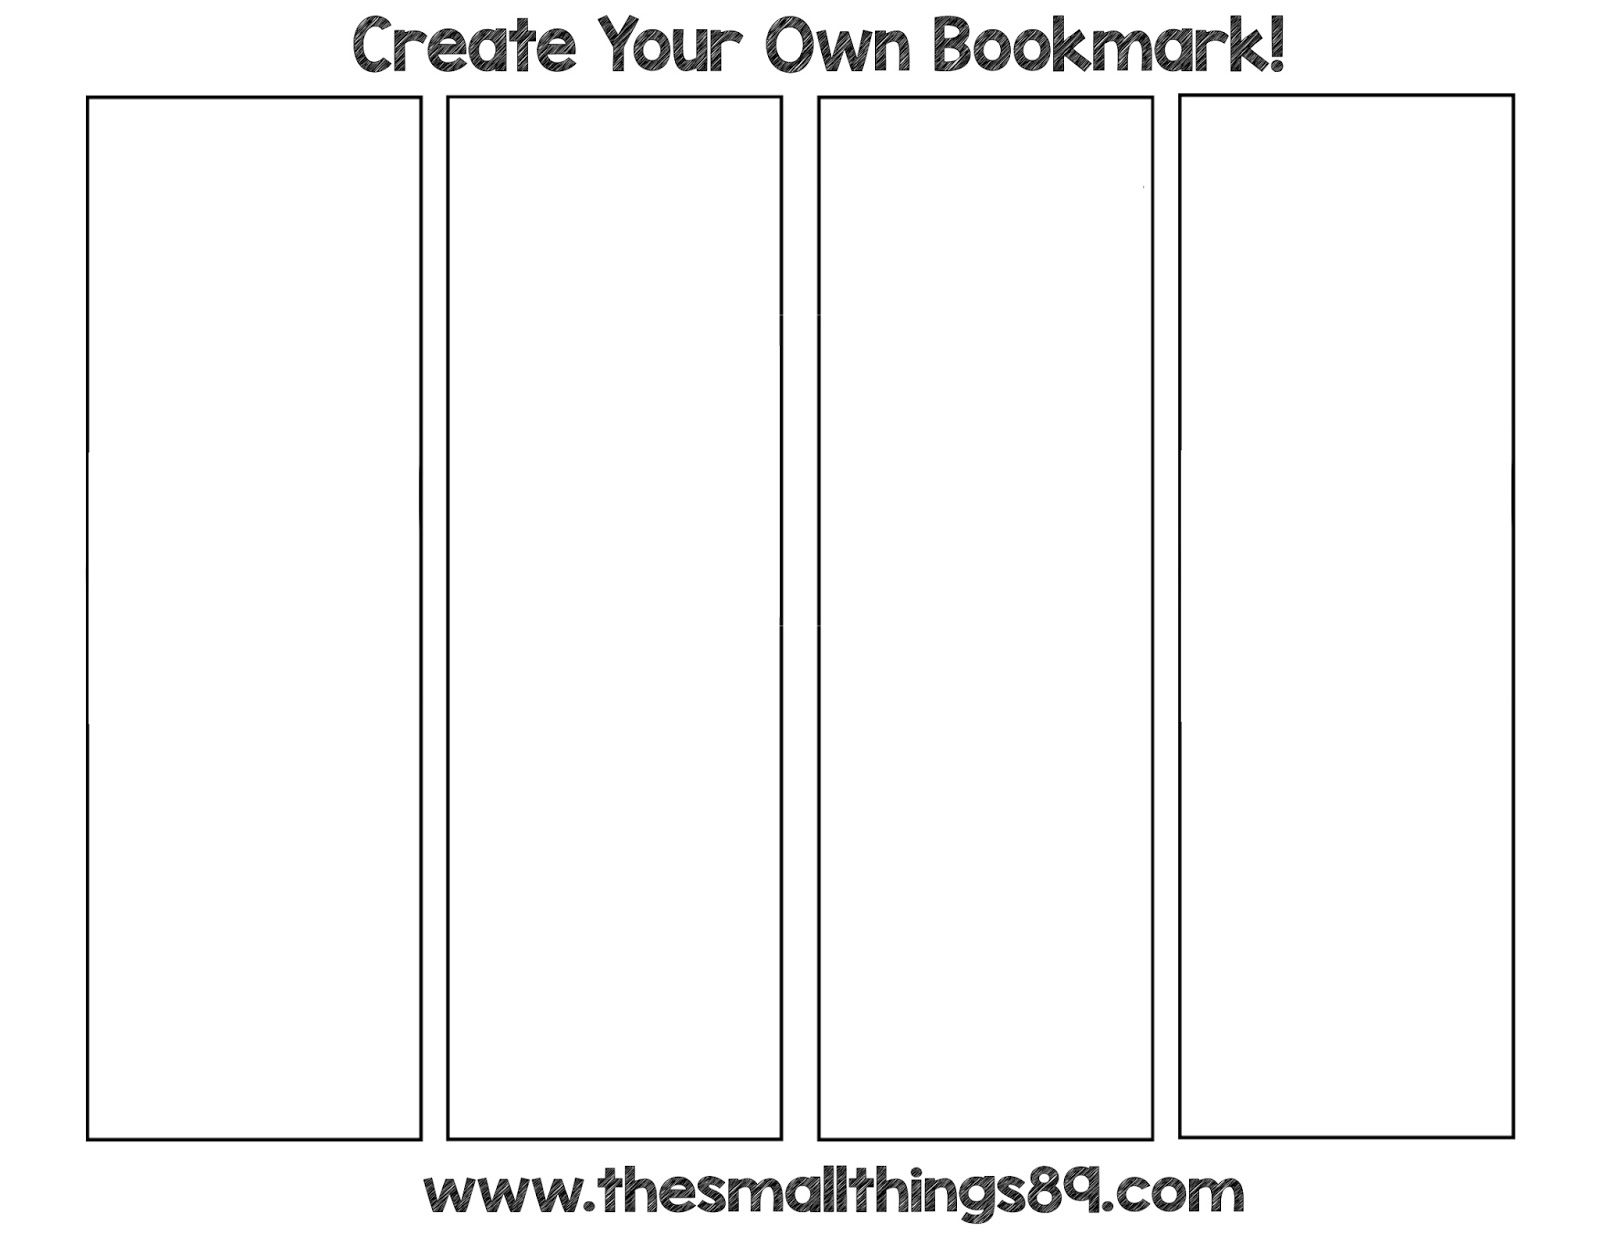 Create your own bookmark bookmark template create your for Design a bookmark template